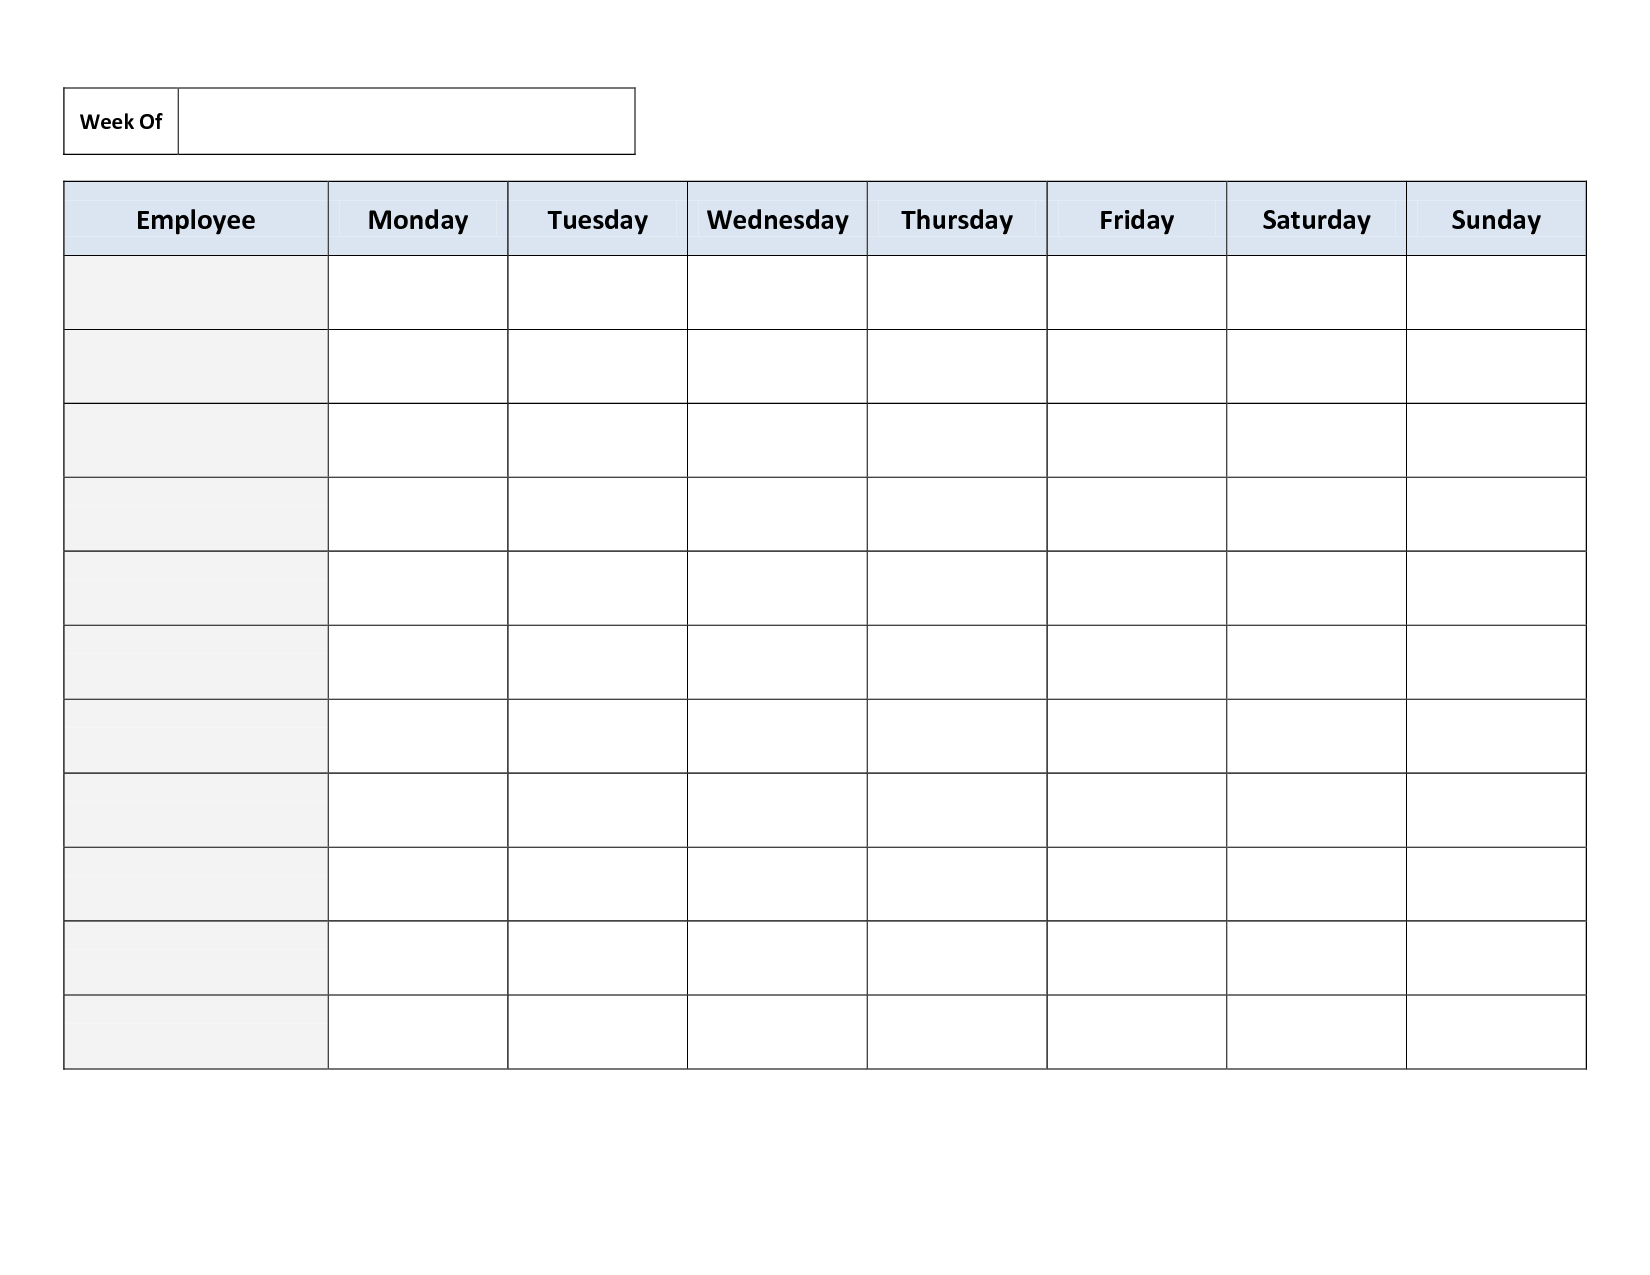 Weekly Employee Work Schedule Template. Free Blank Schedule.pdf - Free Printable Weekly Schedule